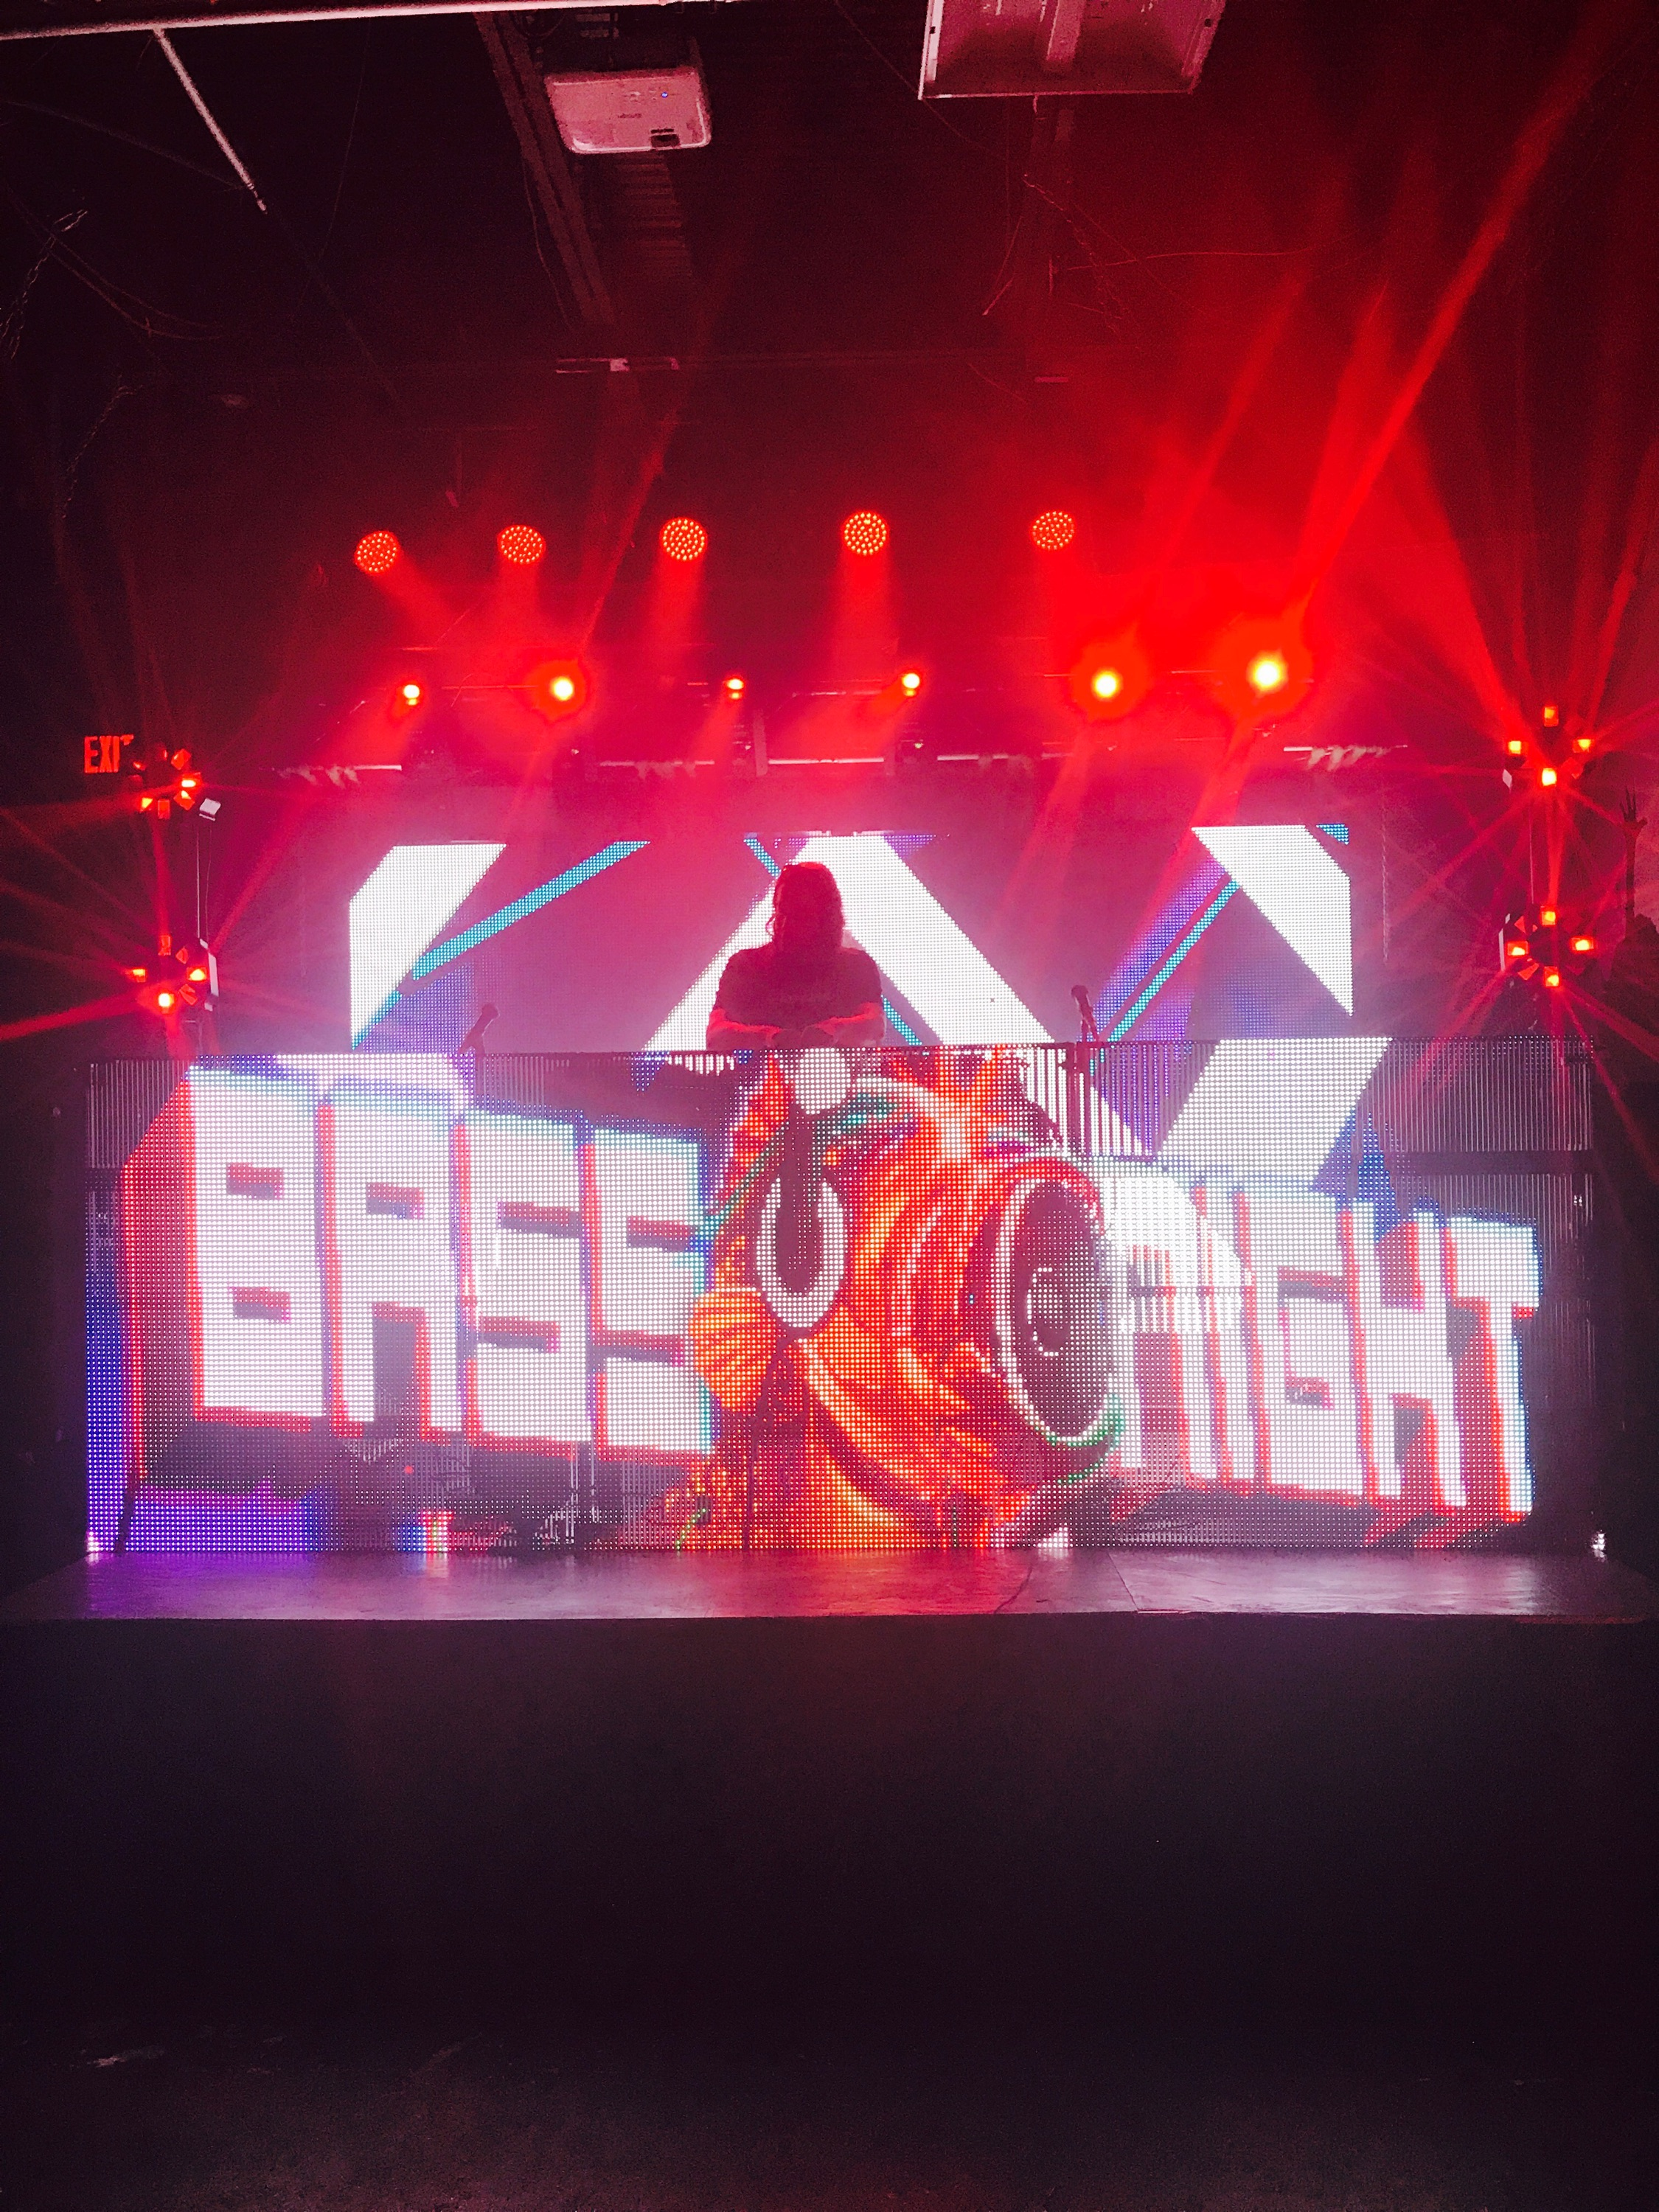 Want to Start Your Own EDM Club Night? Creator of Orlando's BassNight Shares How